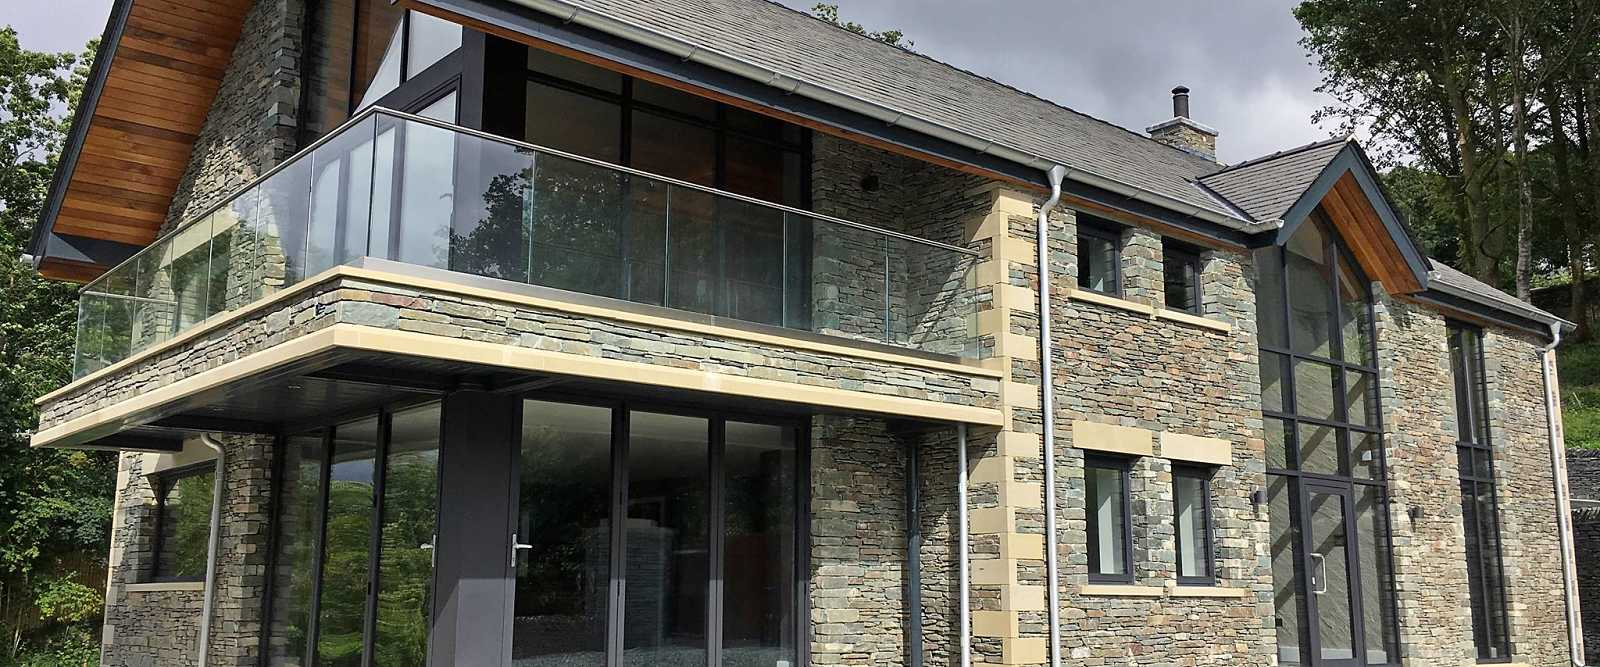 Curtain wall residential commercial glazing marlin for Residential window walls